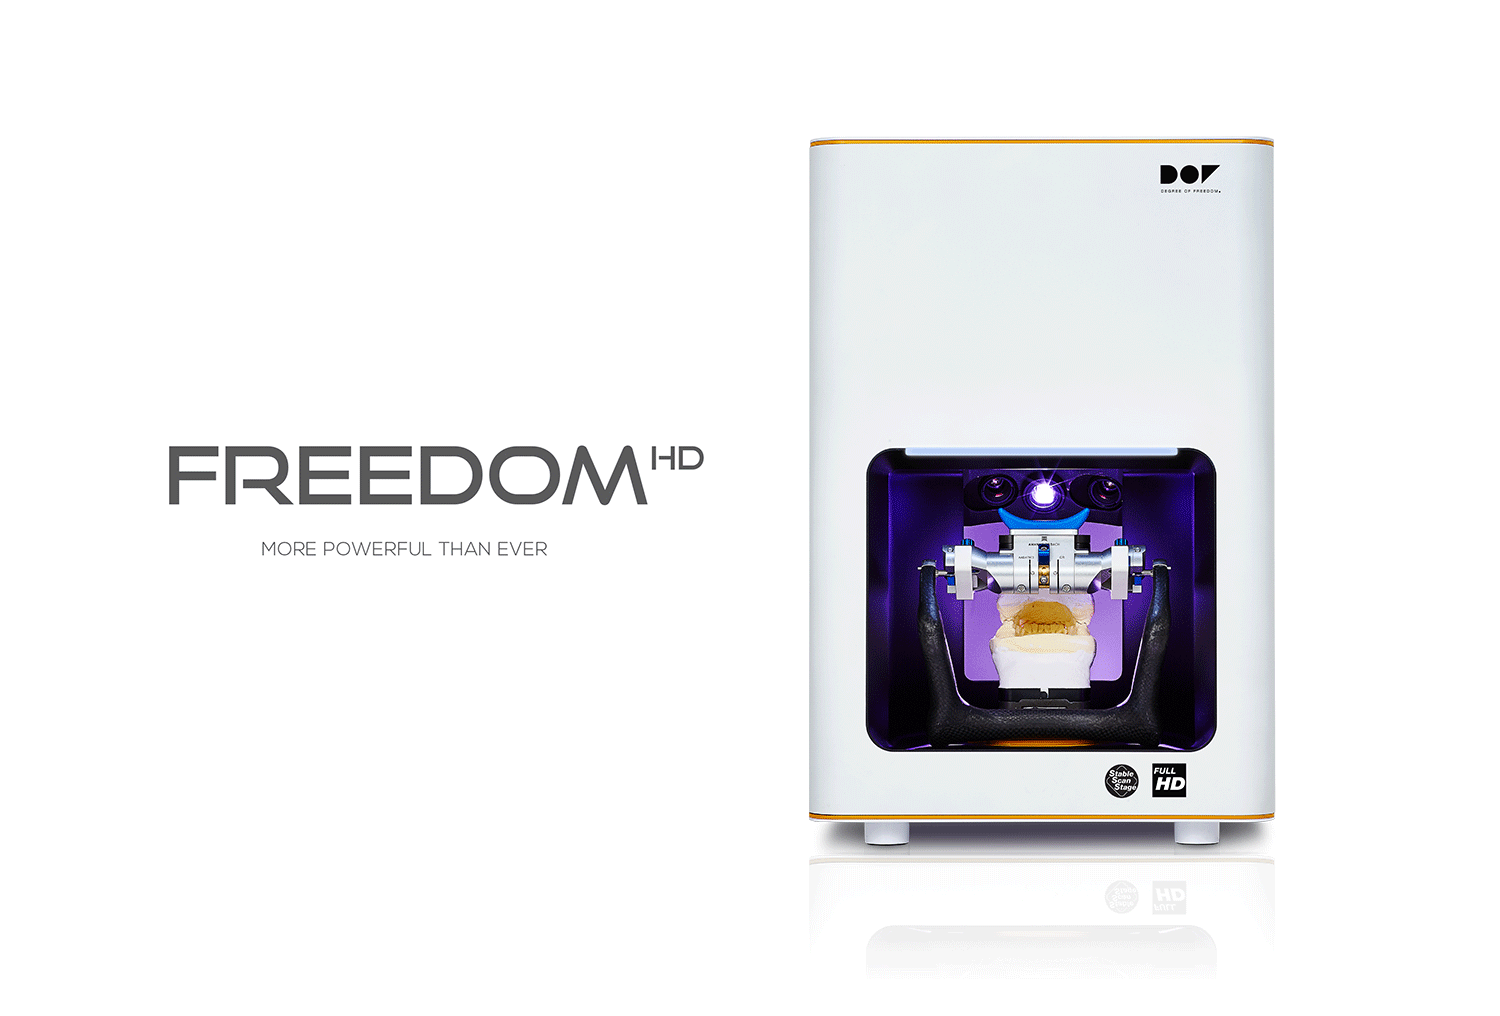 FREEDOM HD - MORE POWERFUL THAN EVER